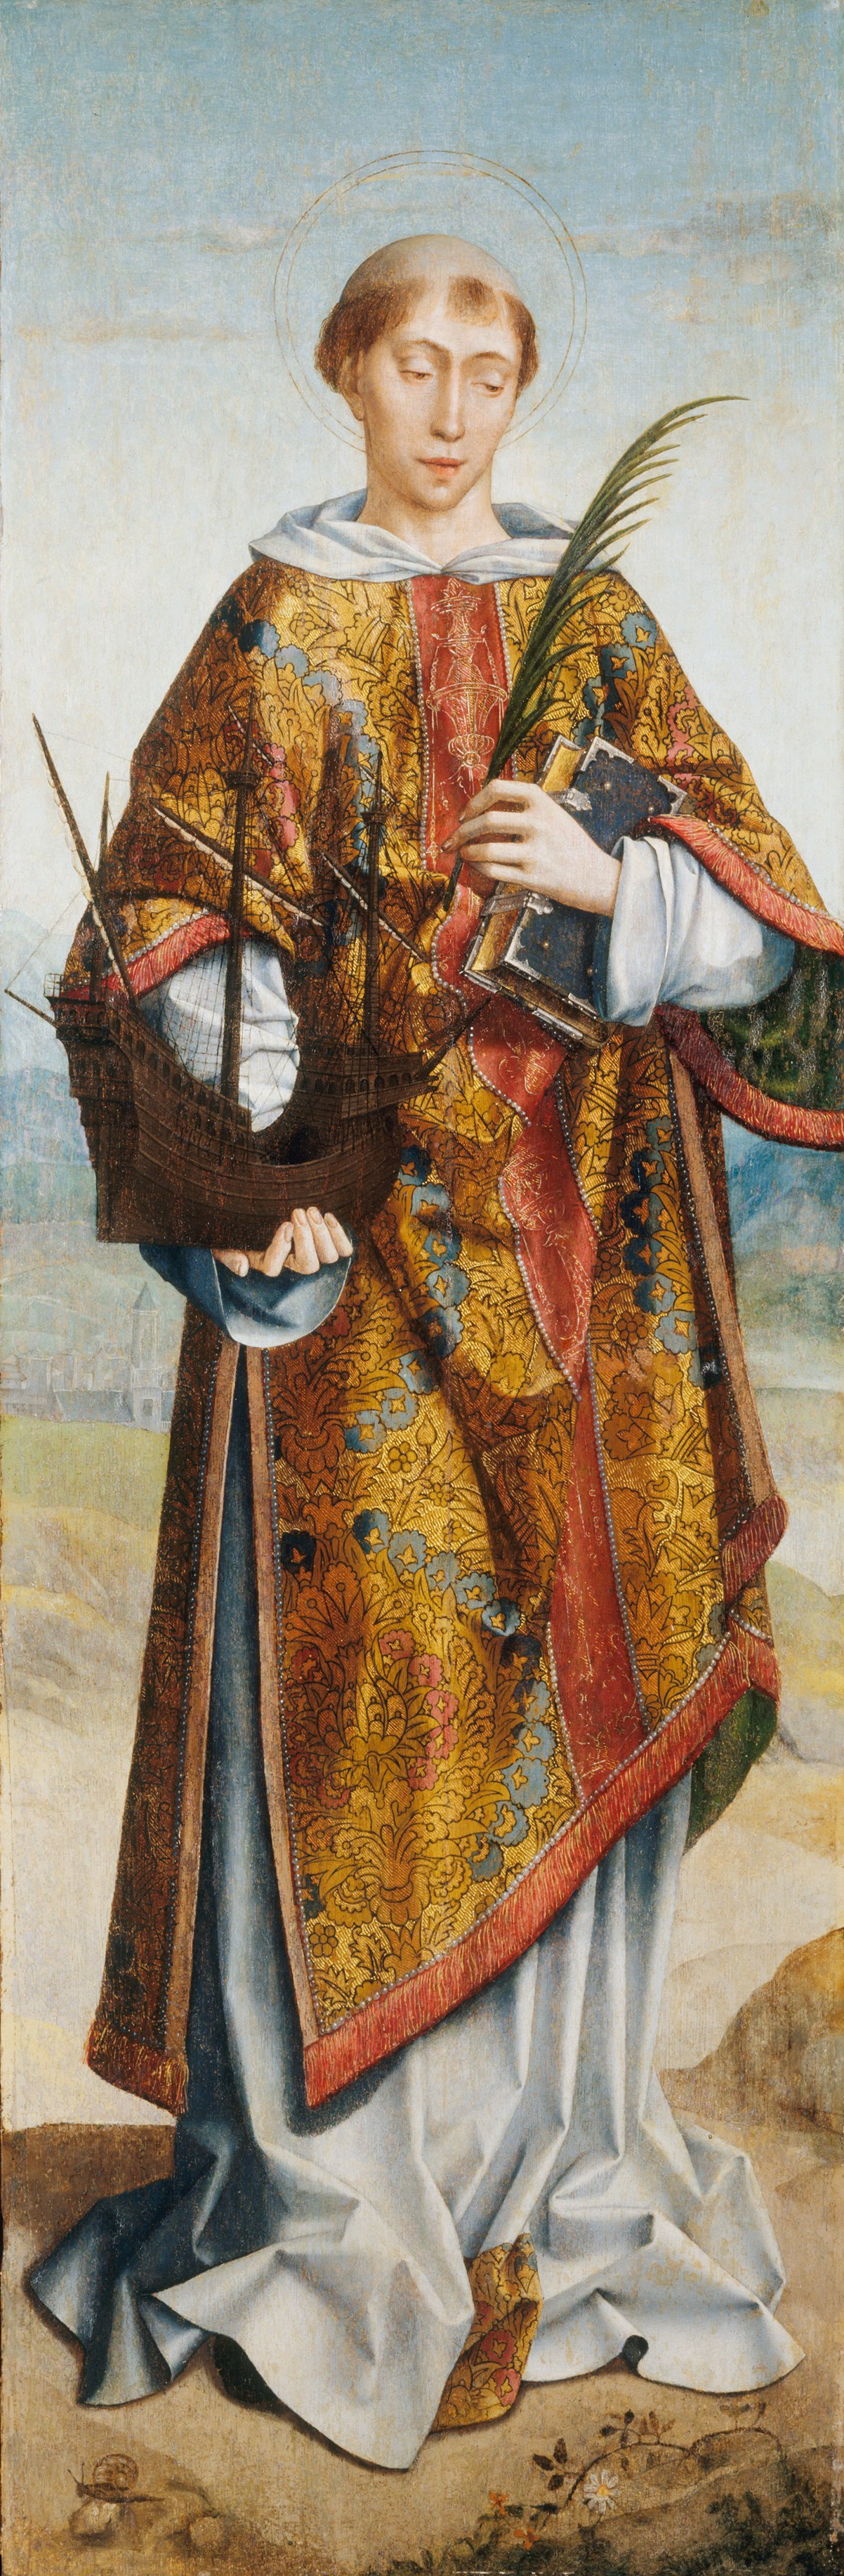 https://upload.wikimedia.org/wikipedia/commons/5/54/Saint_Vincent%2C_Patron_Saint_of_Lisbon%2C_by_Frei_Carlos.png